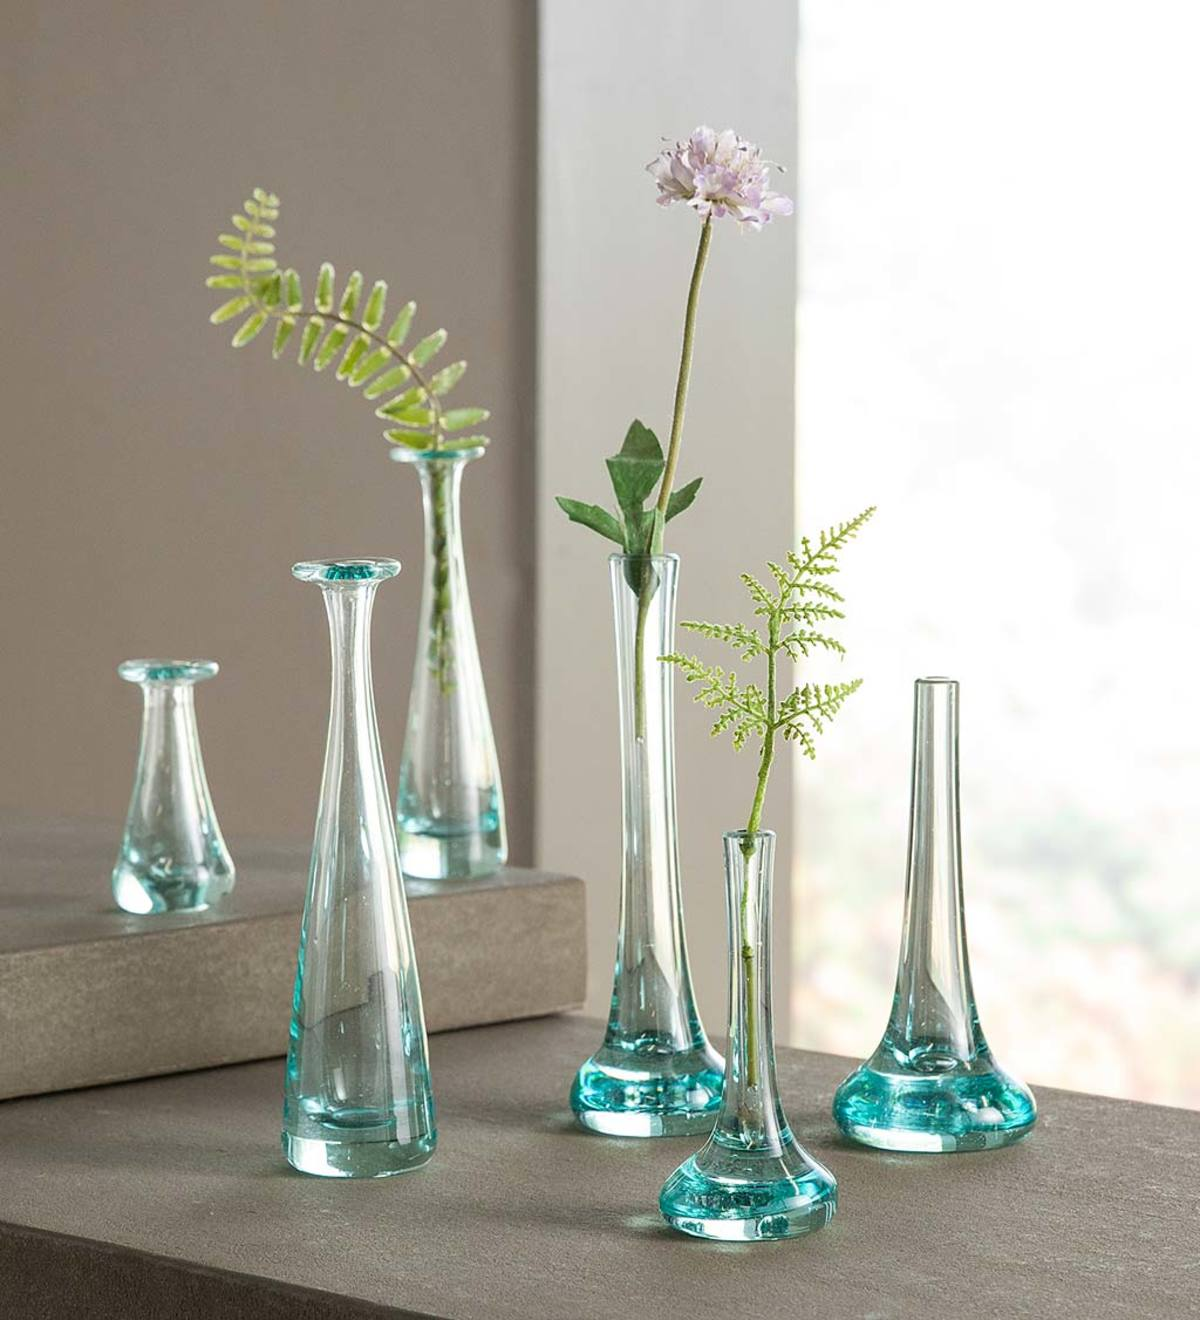 Set of 3 Recycled Glass Bud Vases - Pooled Bottoms